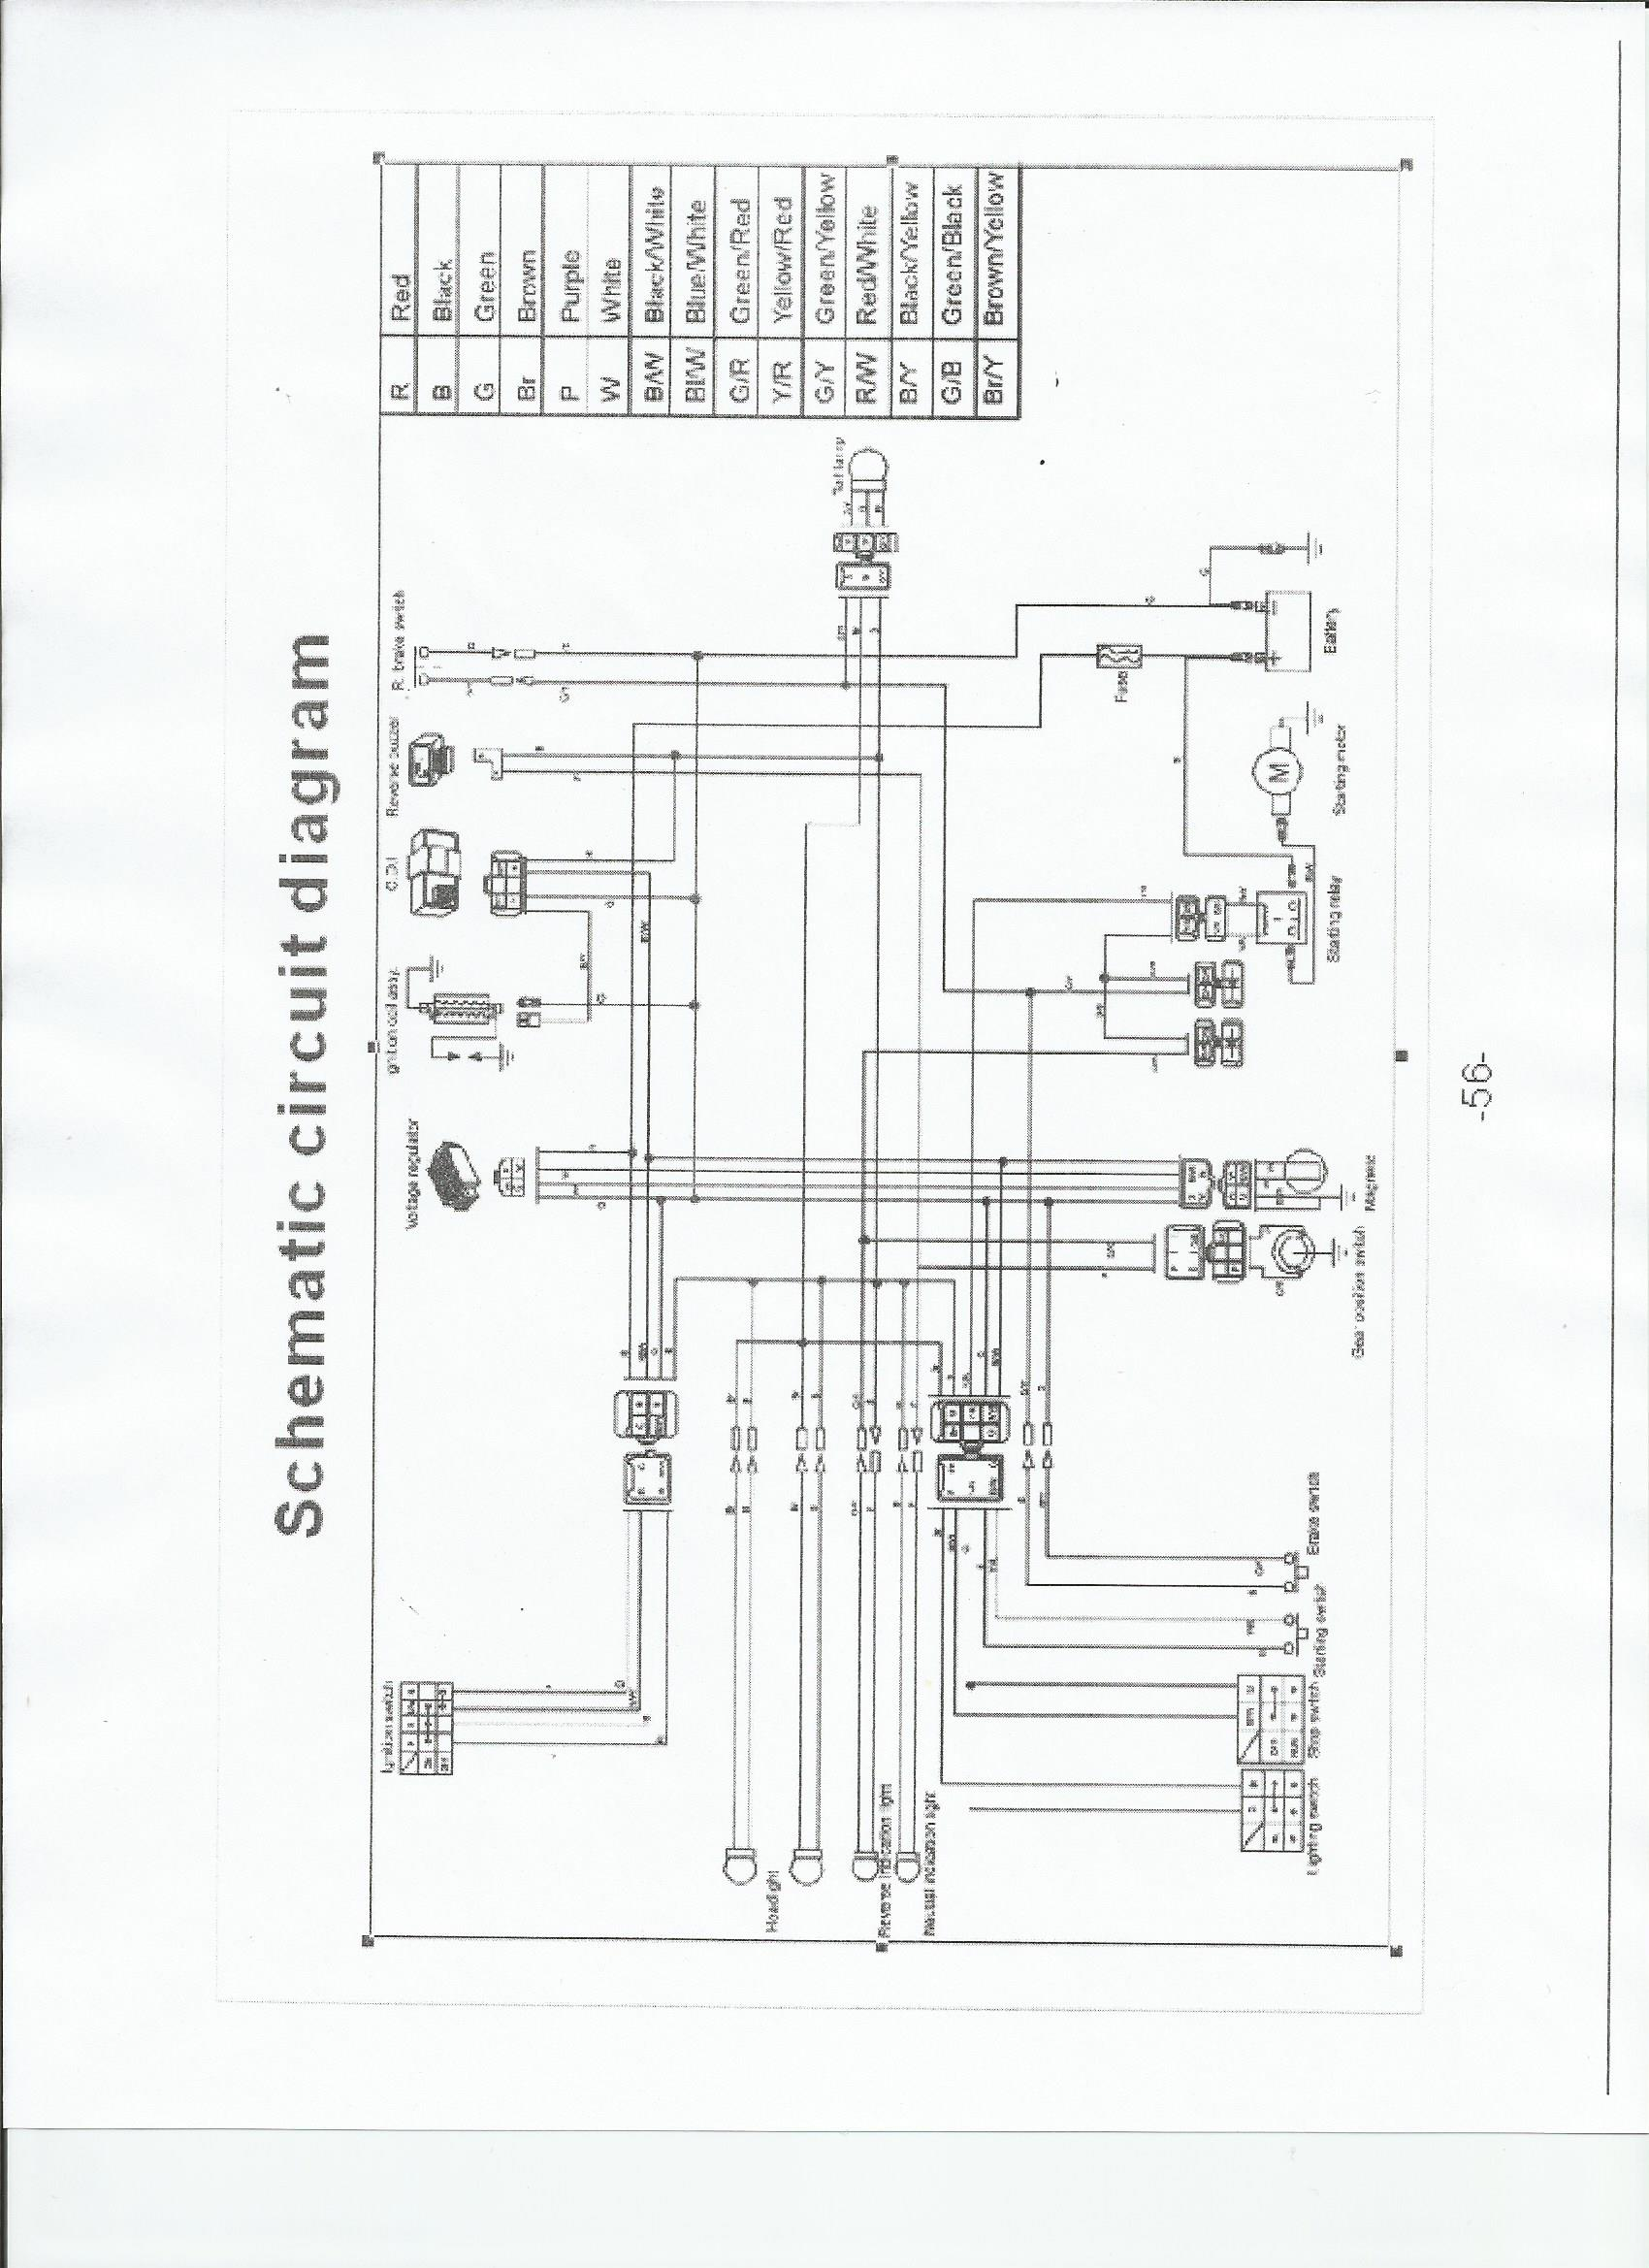 taotao atv 110 wiring diagram